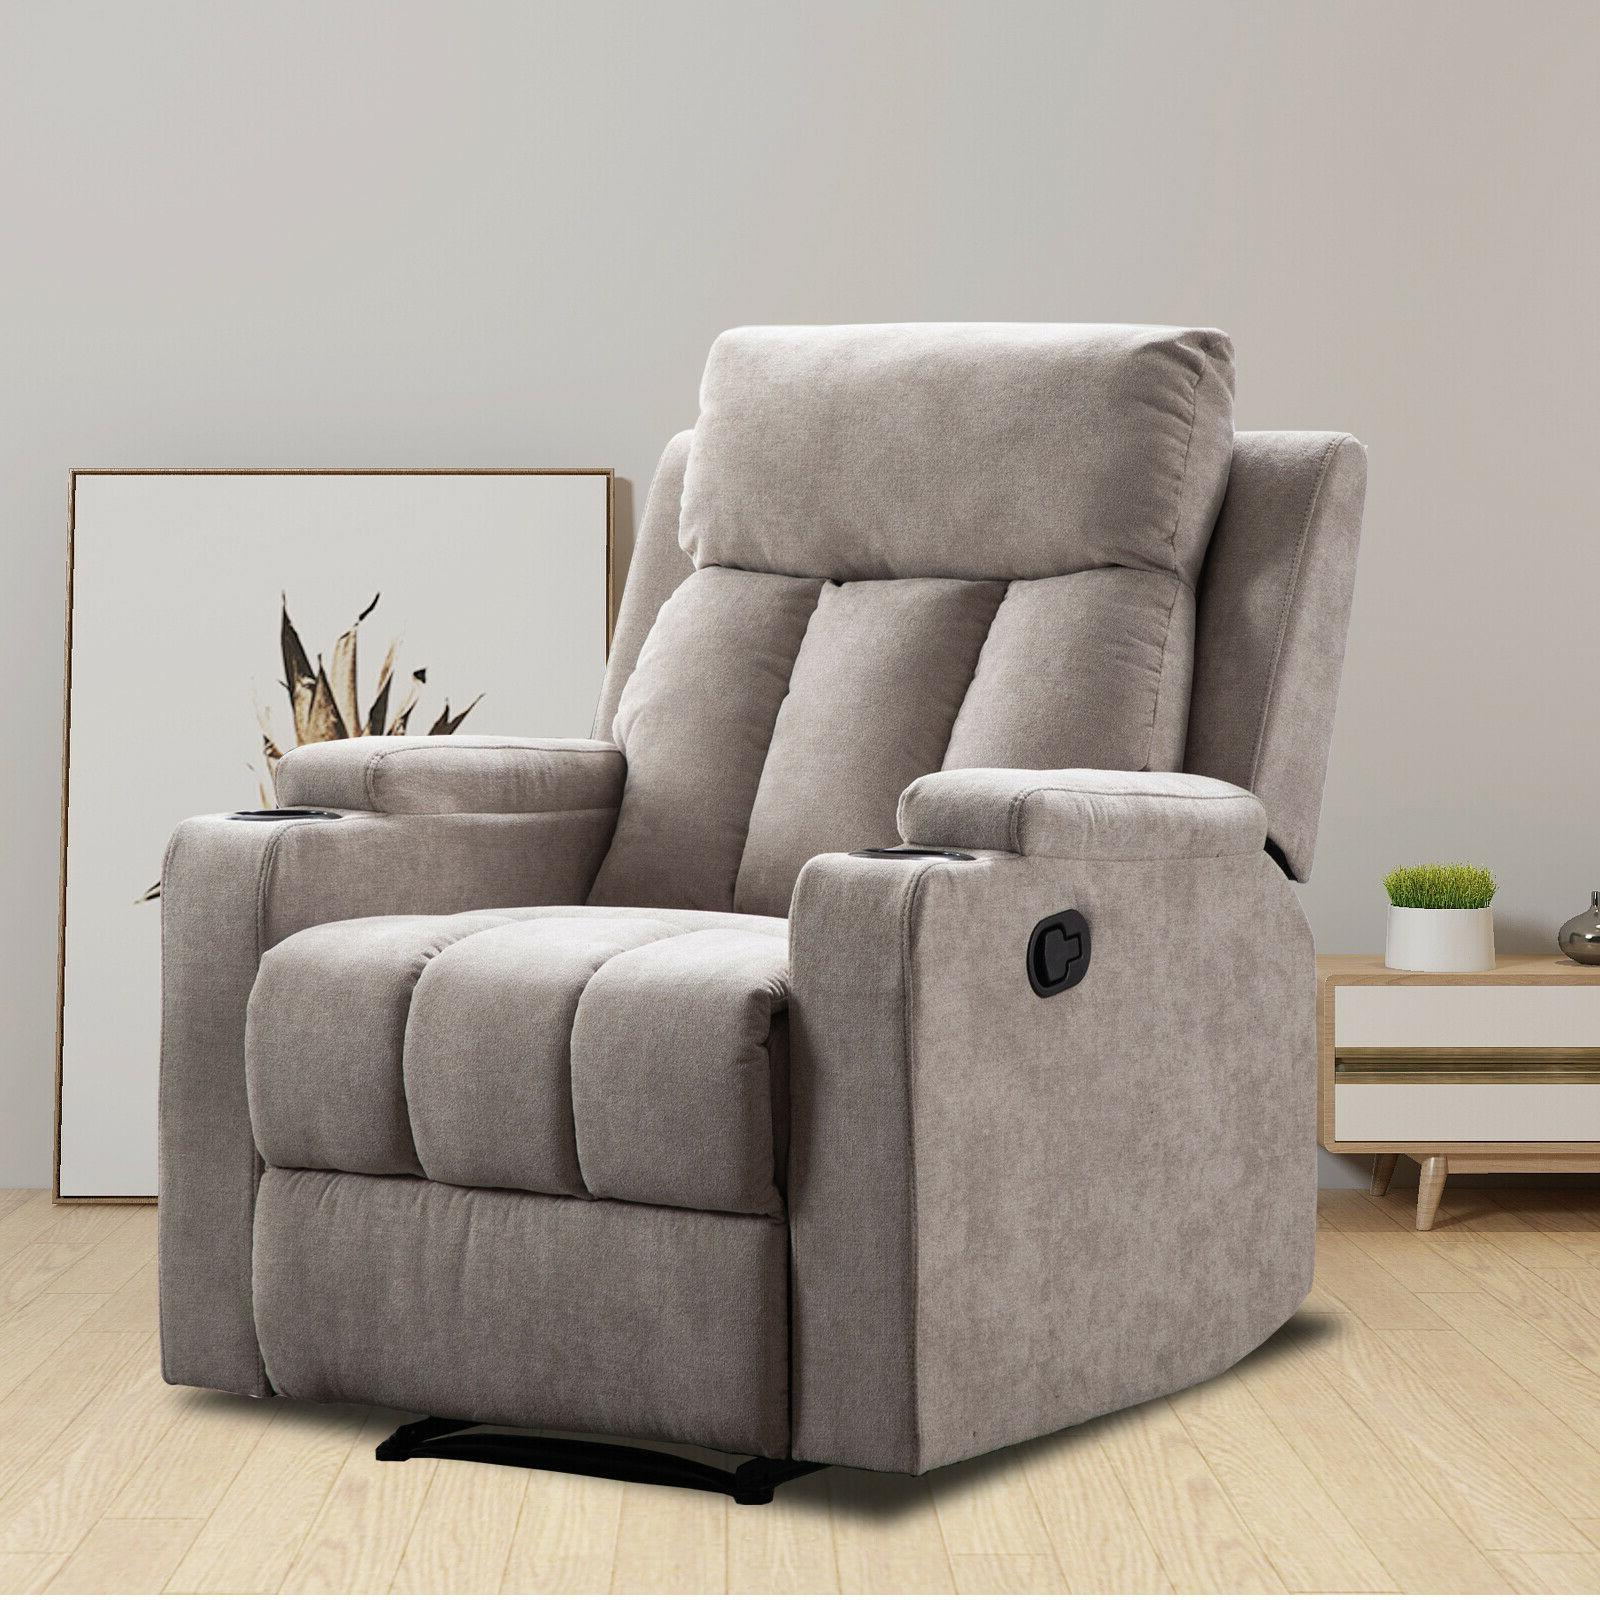 Modern Sofa Living Room Theater Seating Cup Holders